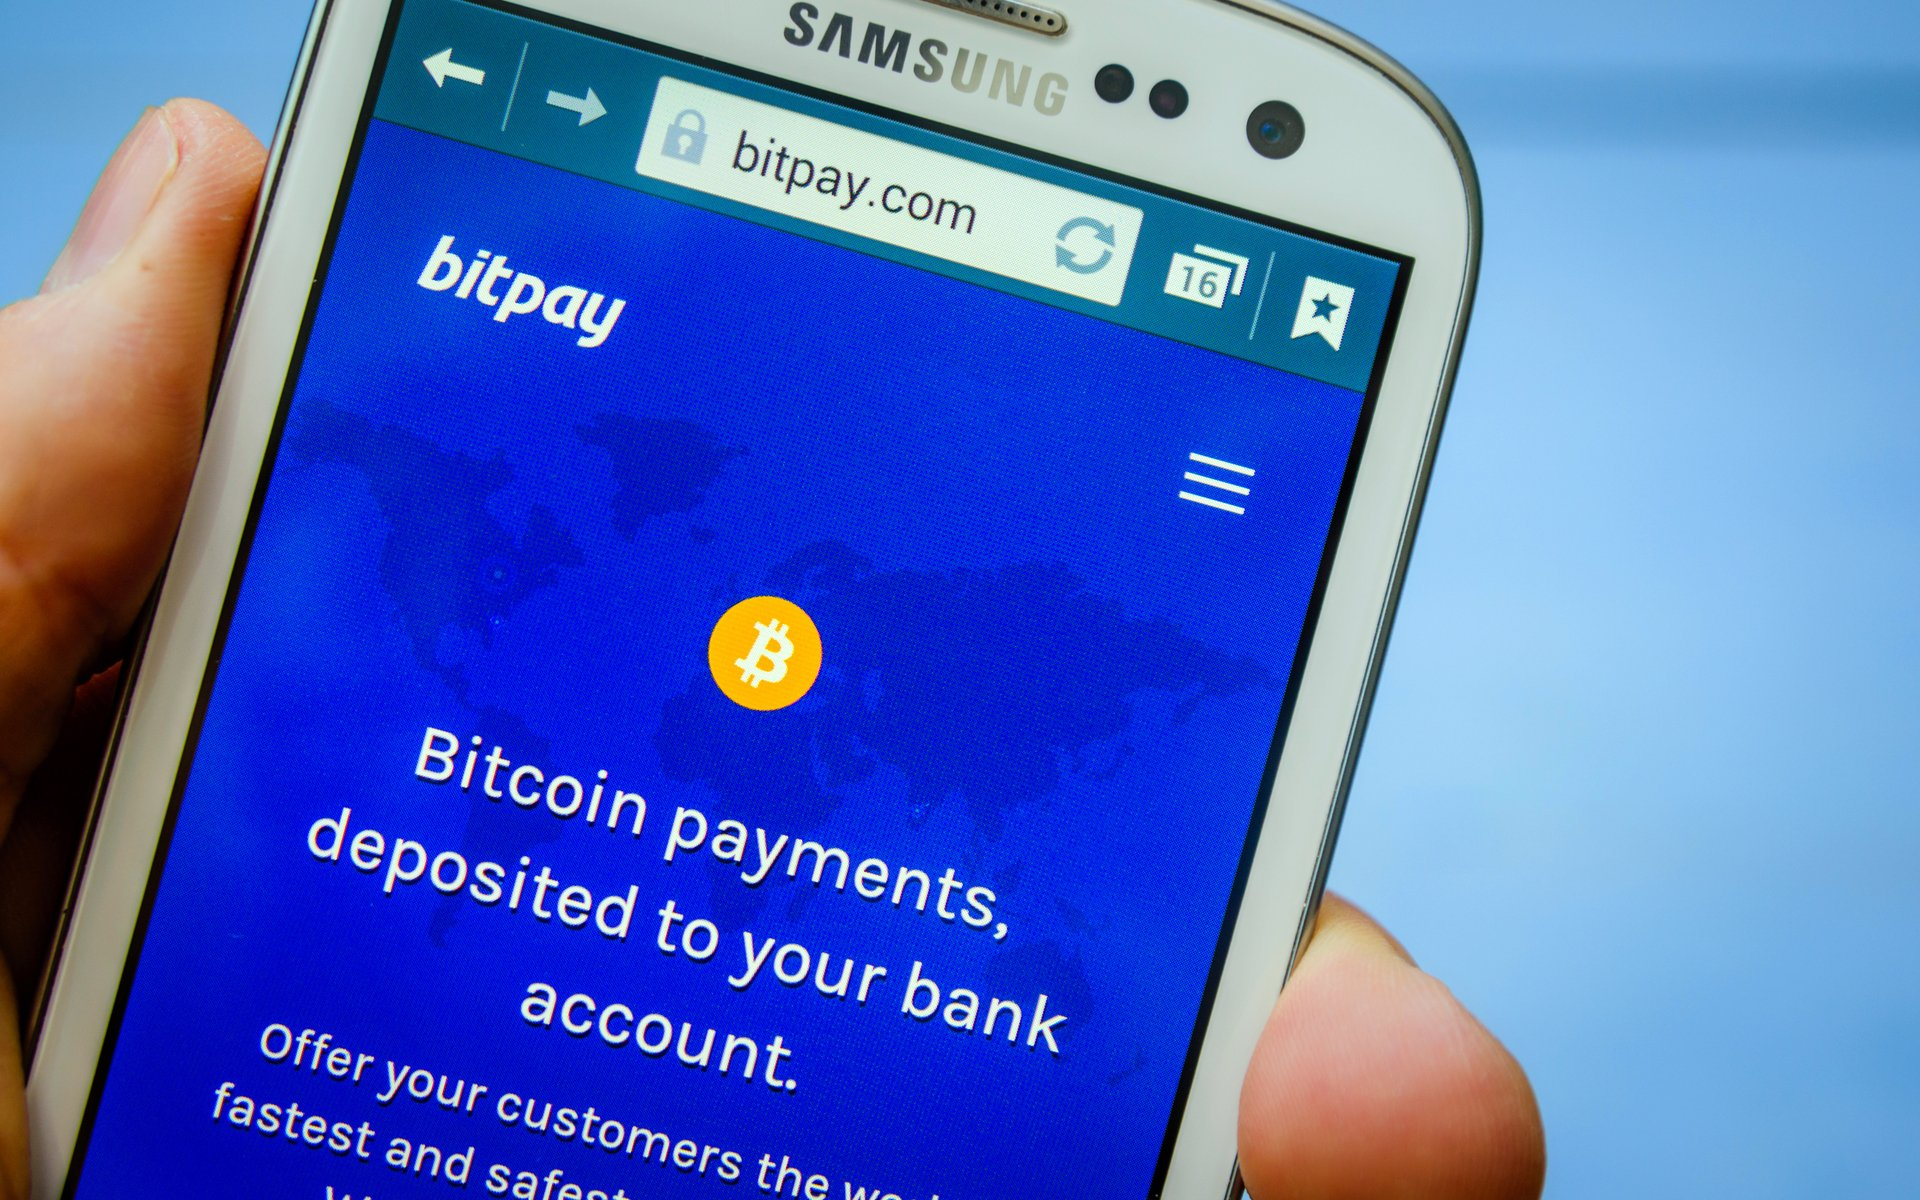 Bitcoin Contributes 95% Of BitPay's Business, CEO Confirms